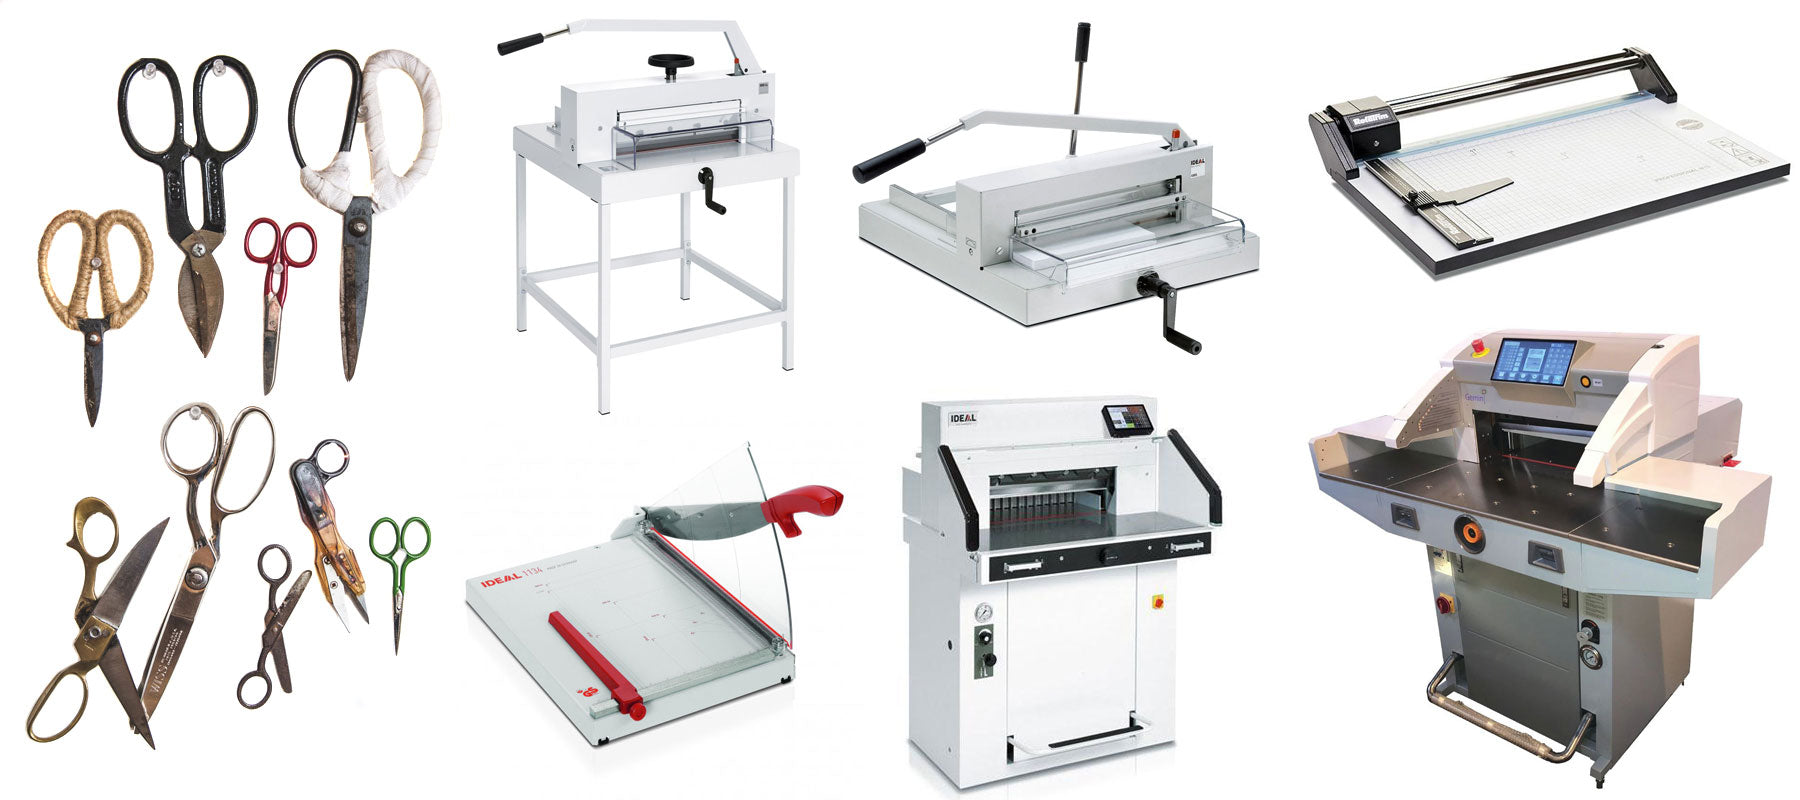 Rotary Trimmers, Paper Trimmers & Guillotines....What's the difference?